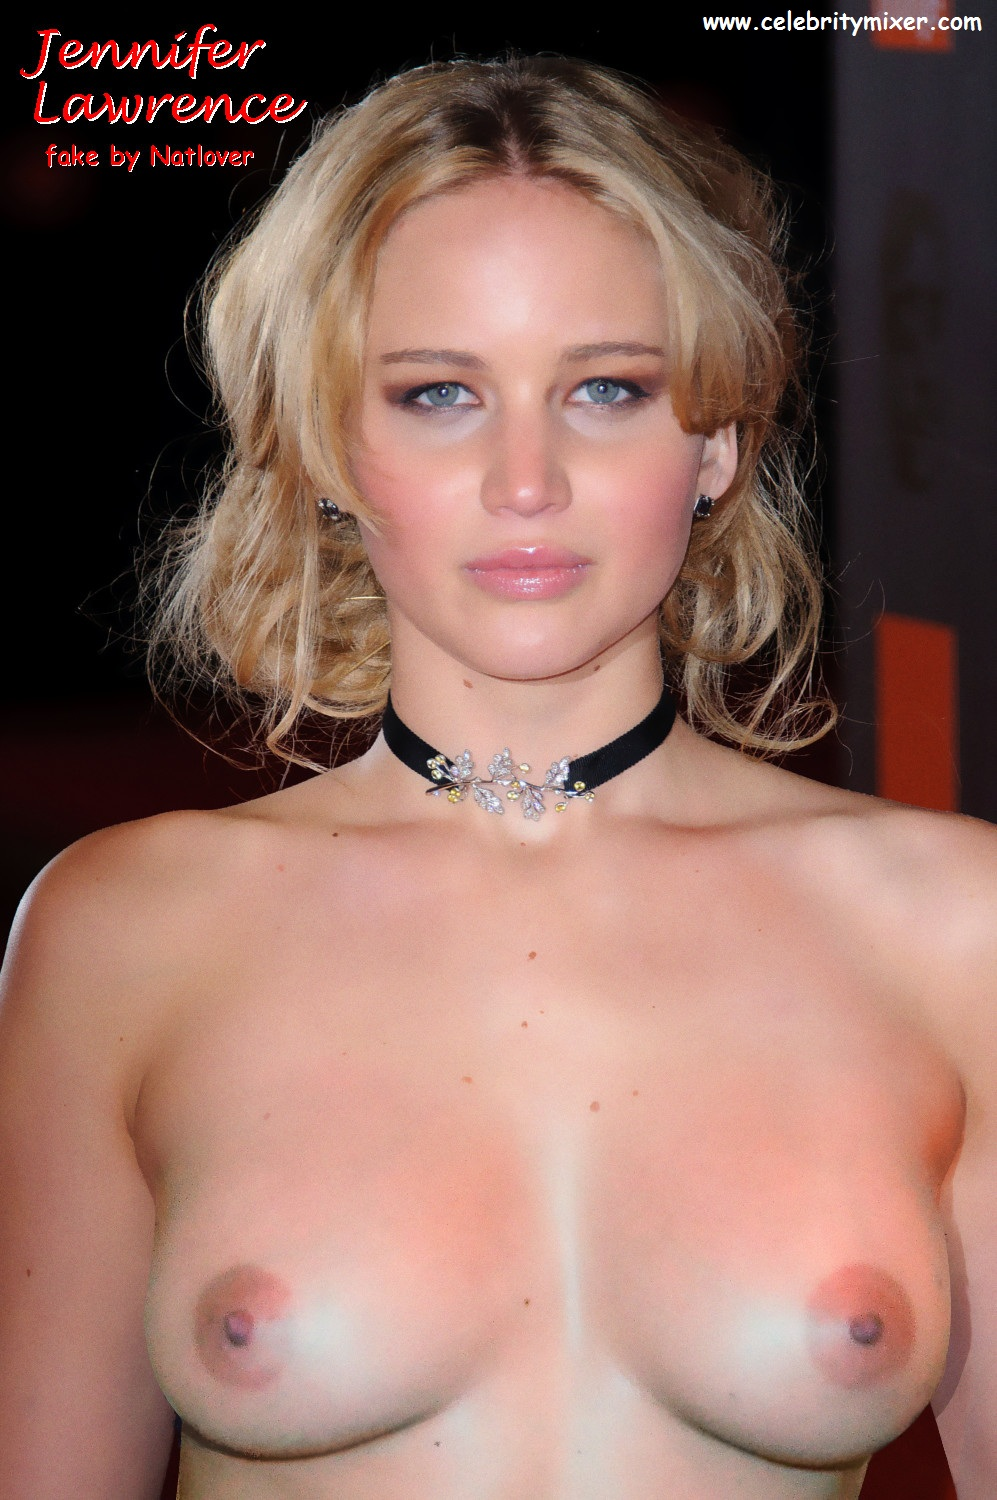 Jennifer Lawrence  Hunger Games  Celebrity X-5967